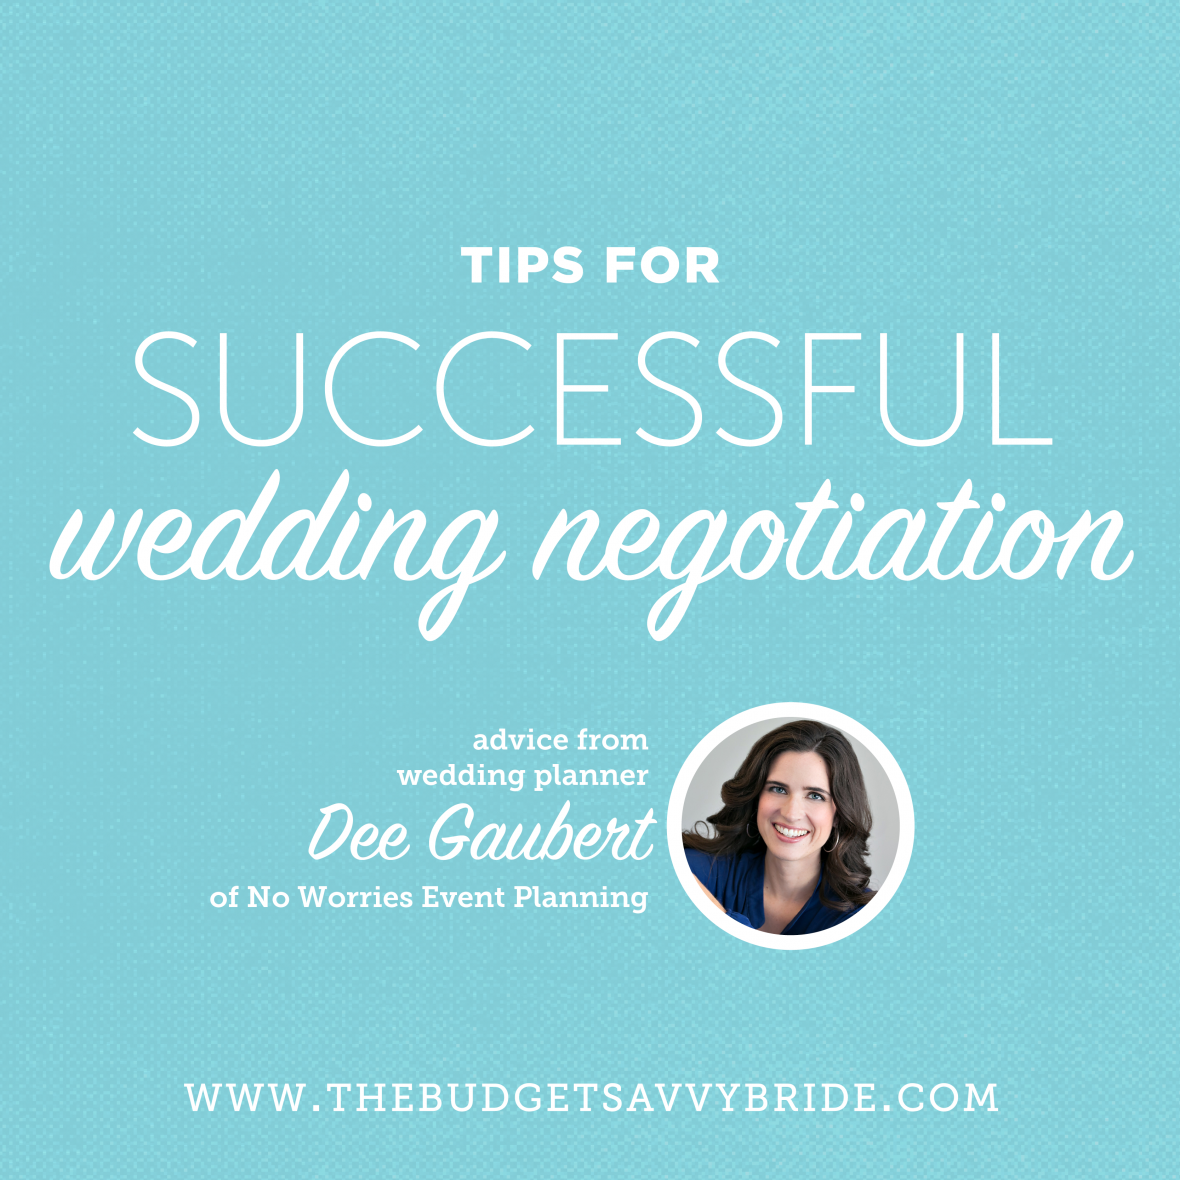 Tips for successful wedding negotiation